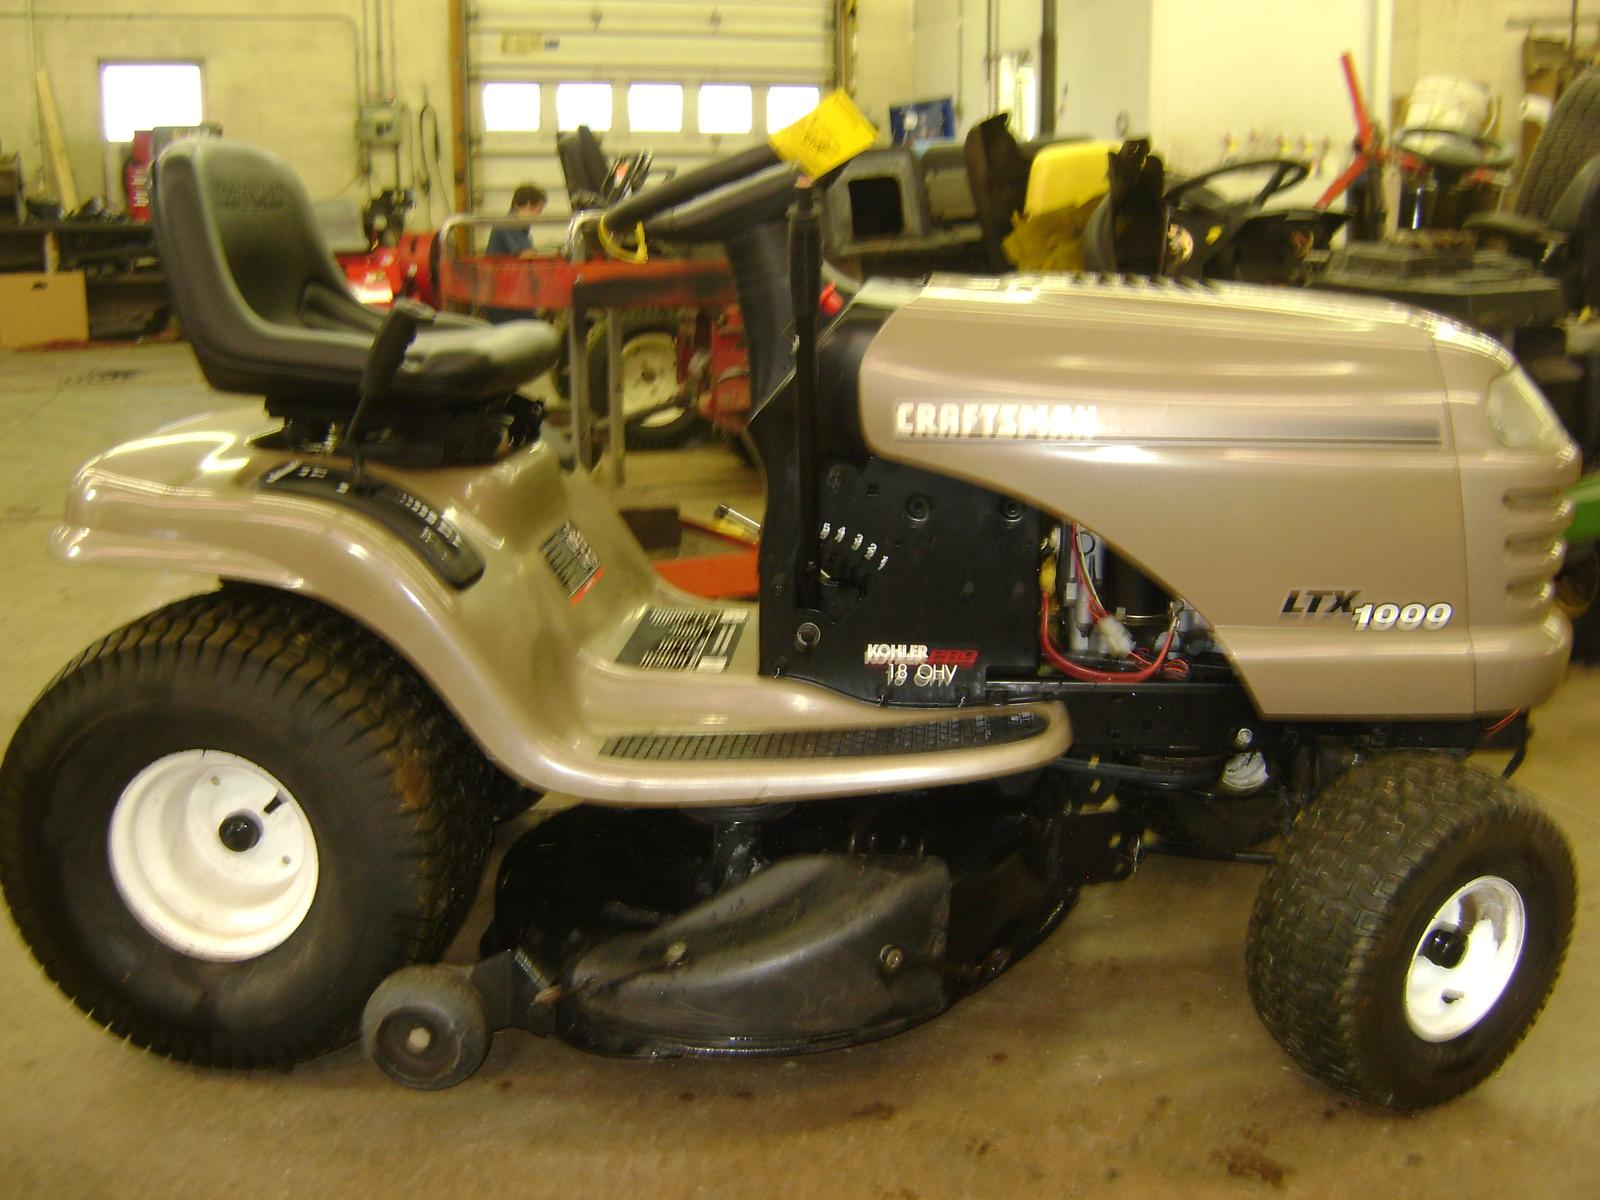 SEARS CRAFTSMAN LTX1000 for sale in Massillon, OH. Doc\'s Lawn and ...